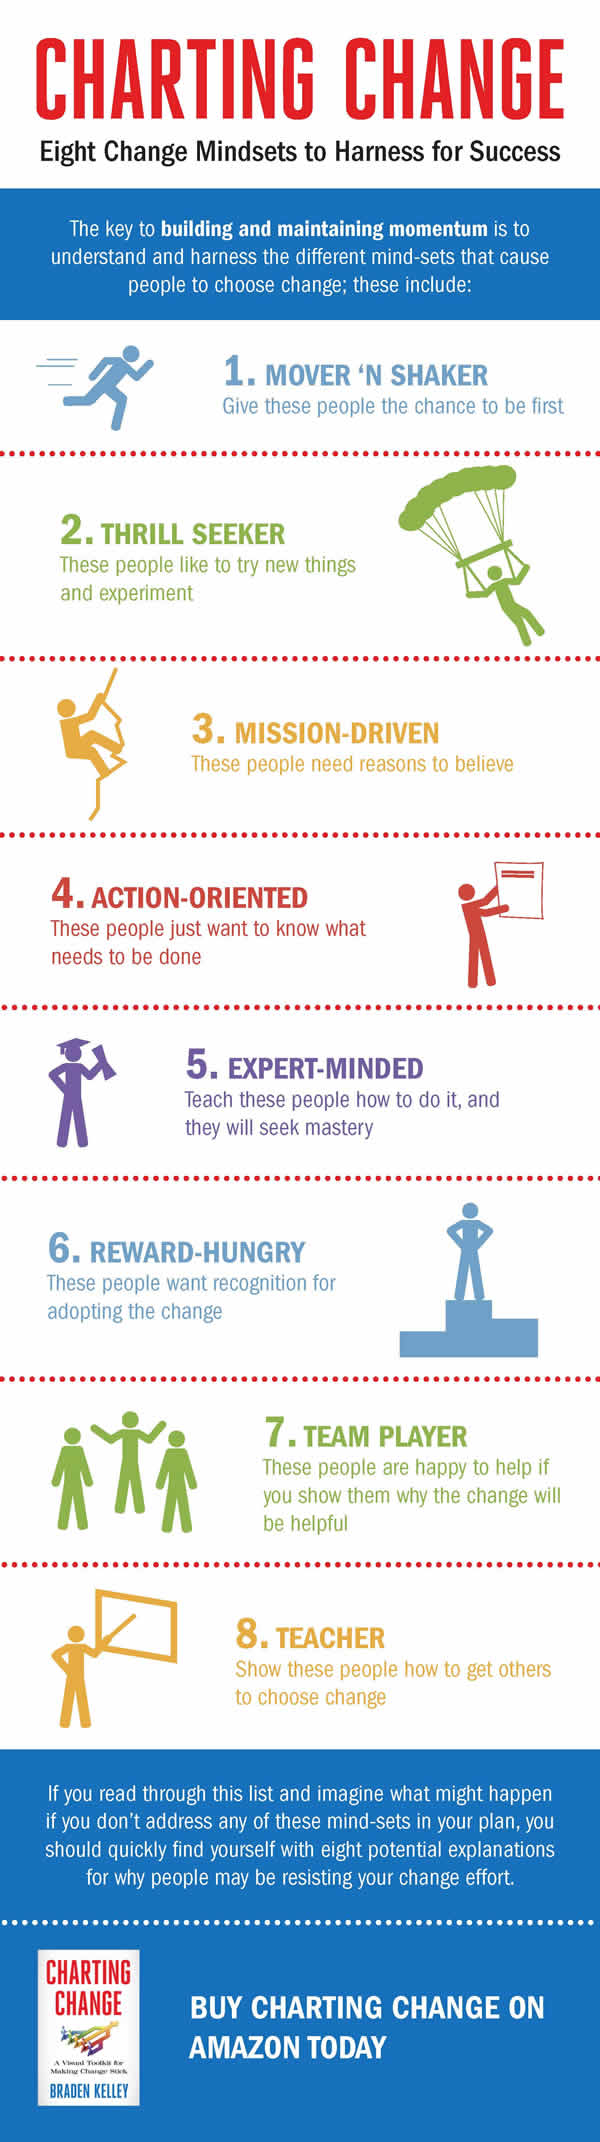 Eight Change Mindsets Infographic